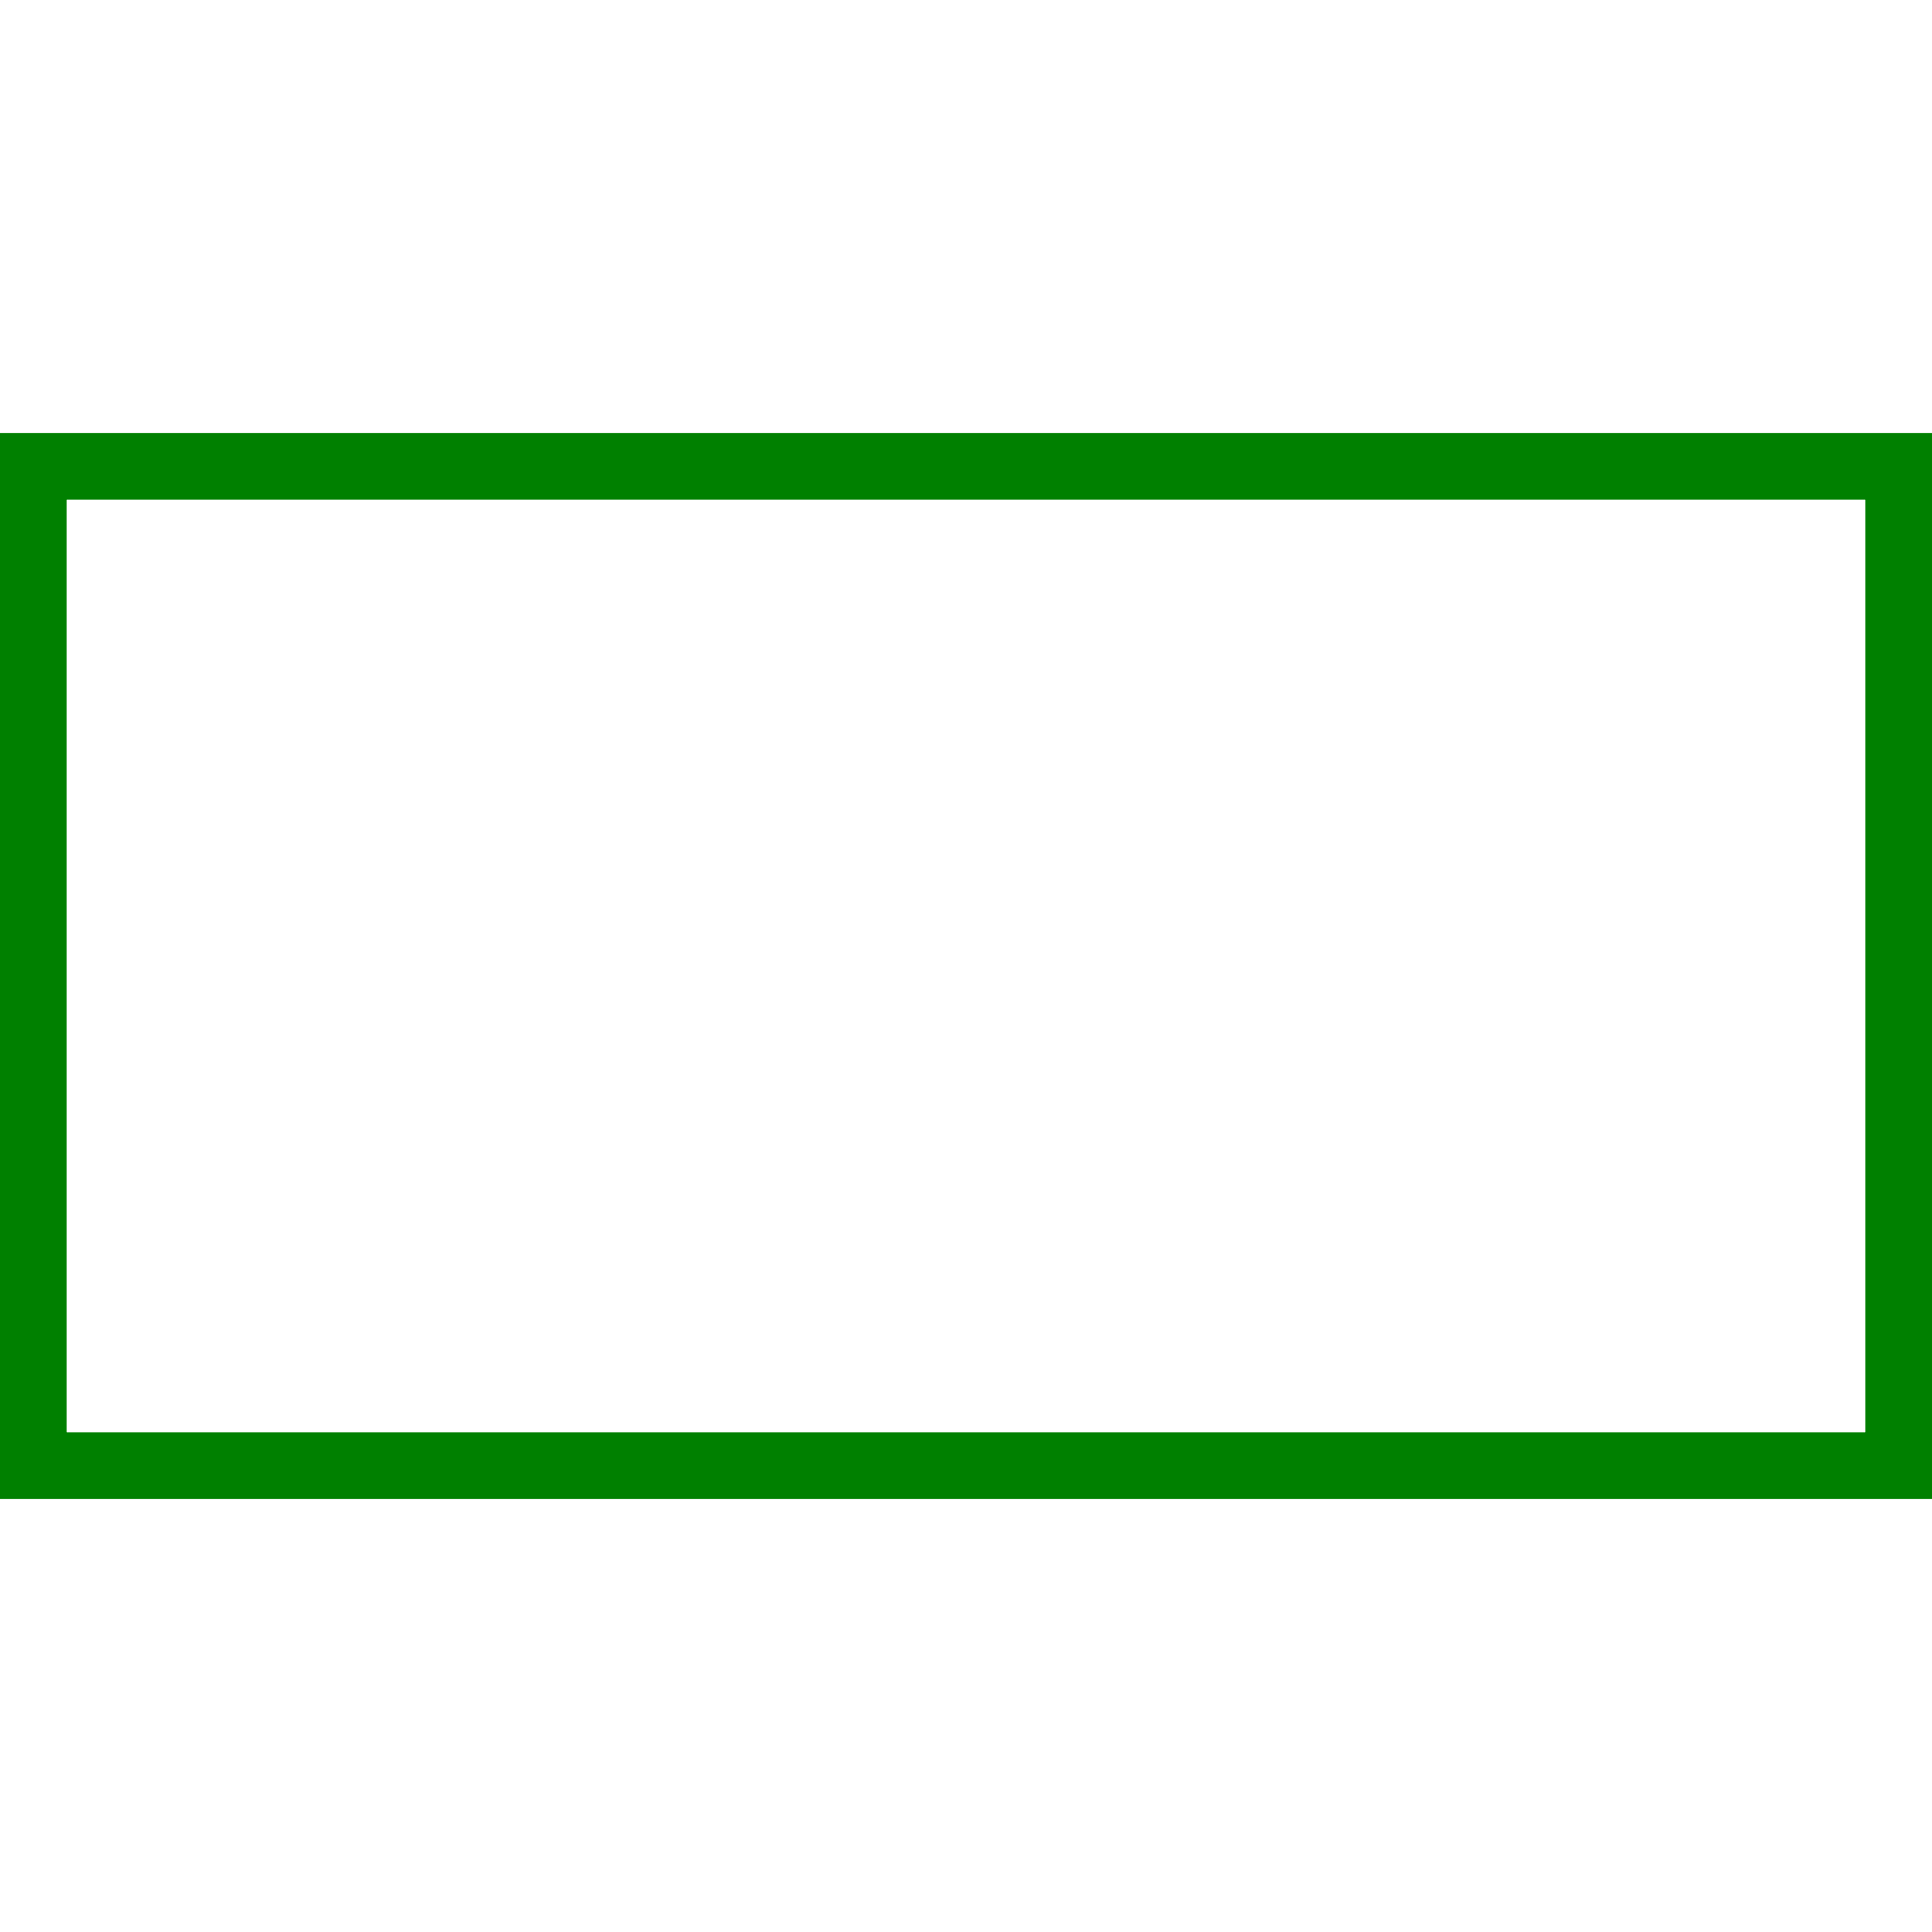 Rectangle clipart banner black and white download Free Rectangle Cliparts, Download Free Clip Art, Free Clip ... banner black and white download